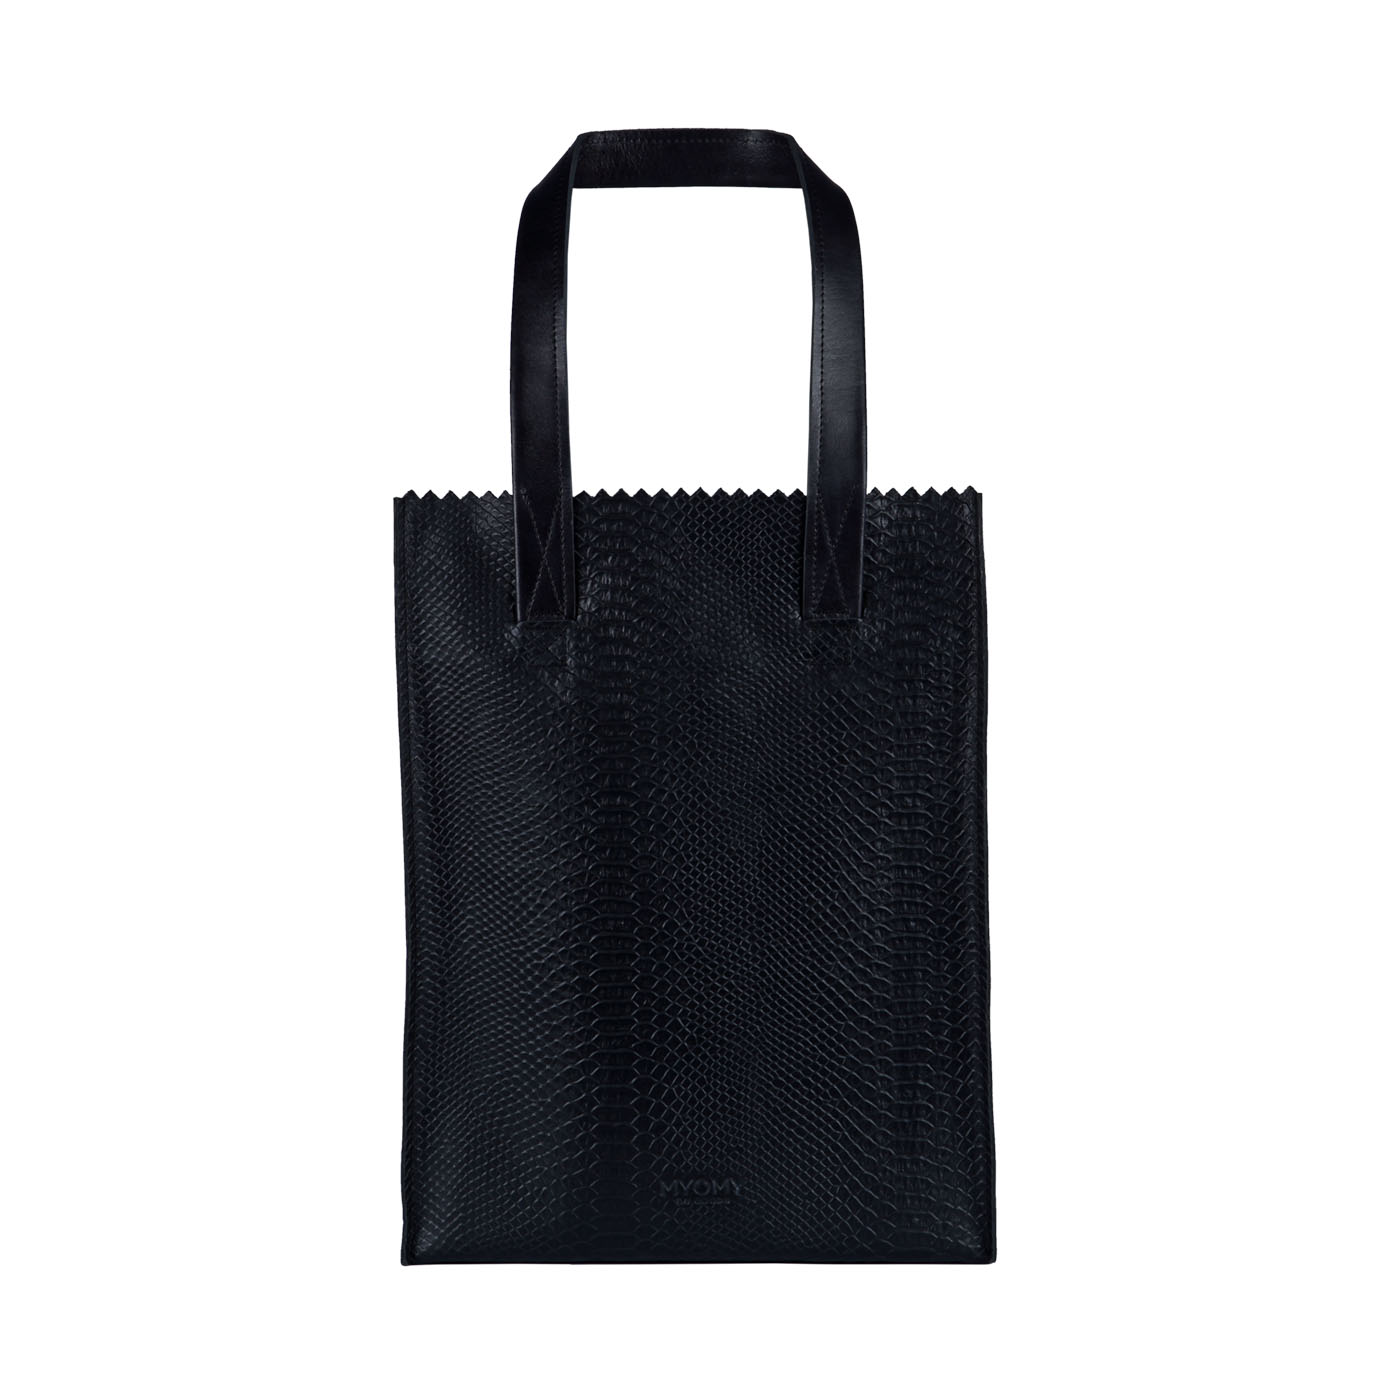 MY PAPER BAG Long handle zip – mix anaconda & waxy black